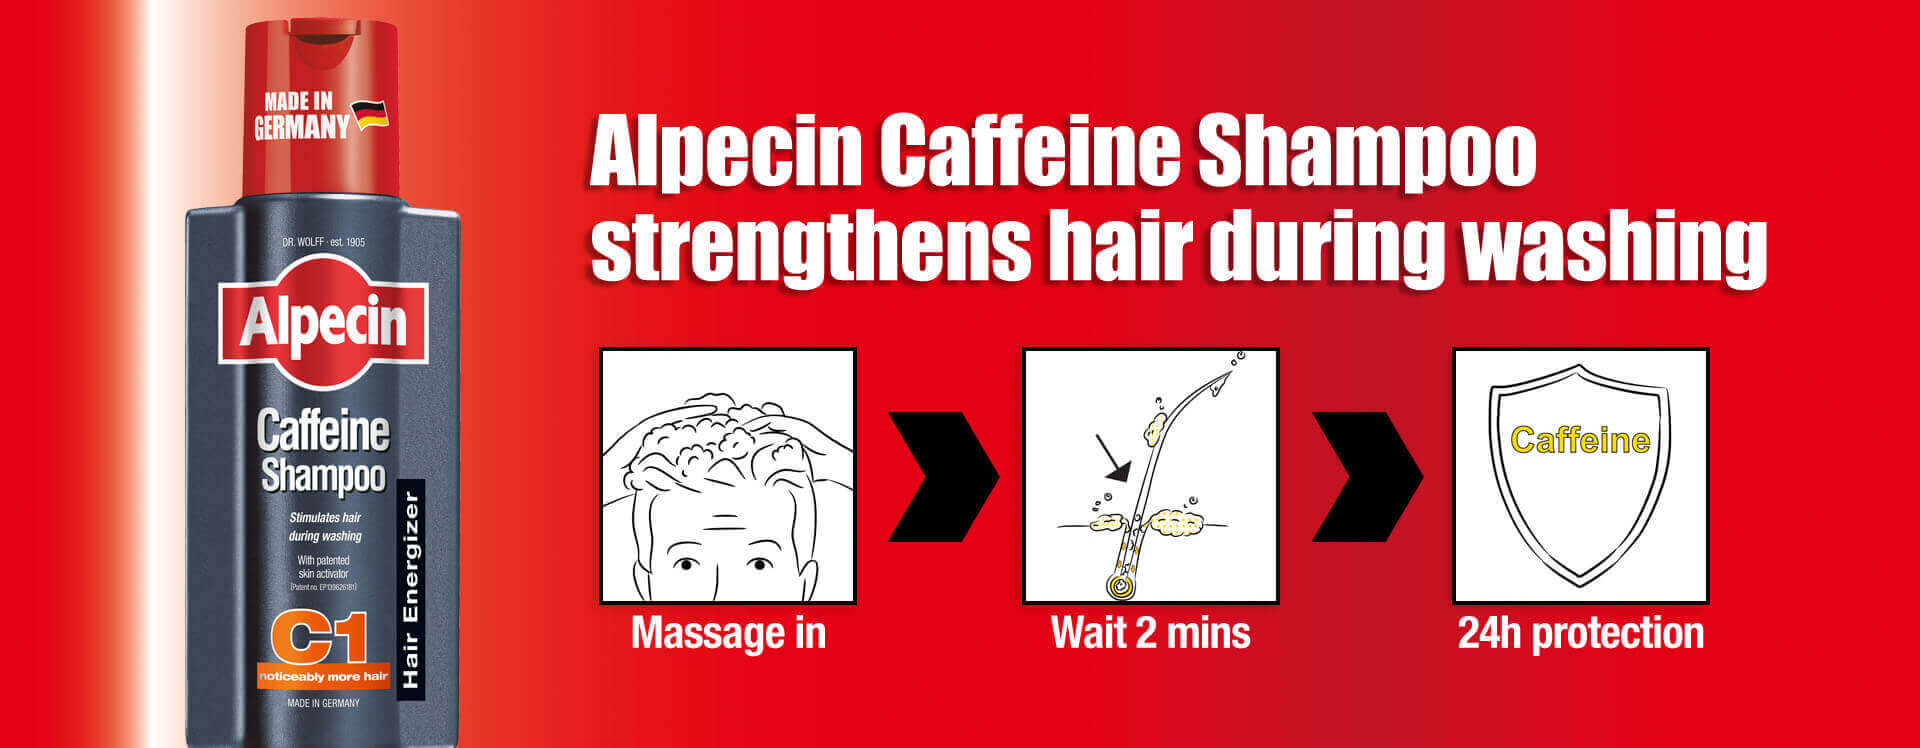 Alpecin Caffeine Shampoo strenghtens hair during washing